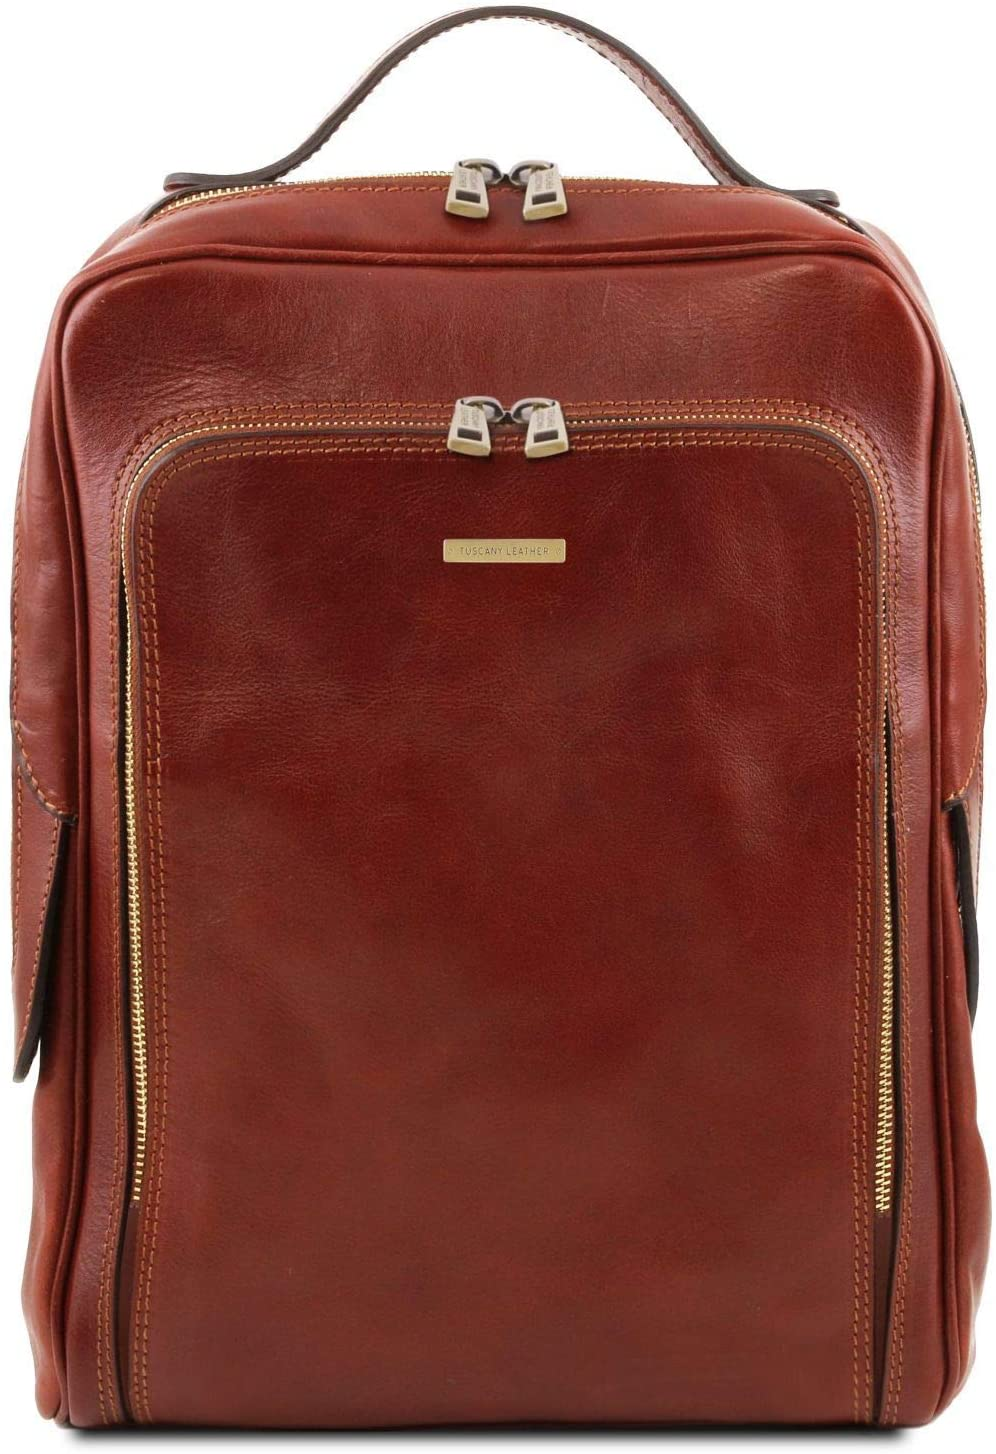 Tuscany Leather Bangkok Leather laptop backpack - TL141793 (Brown)